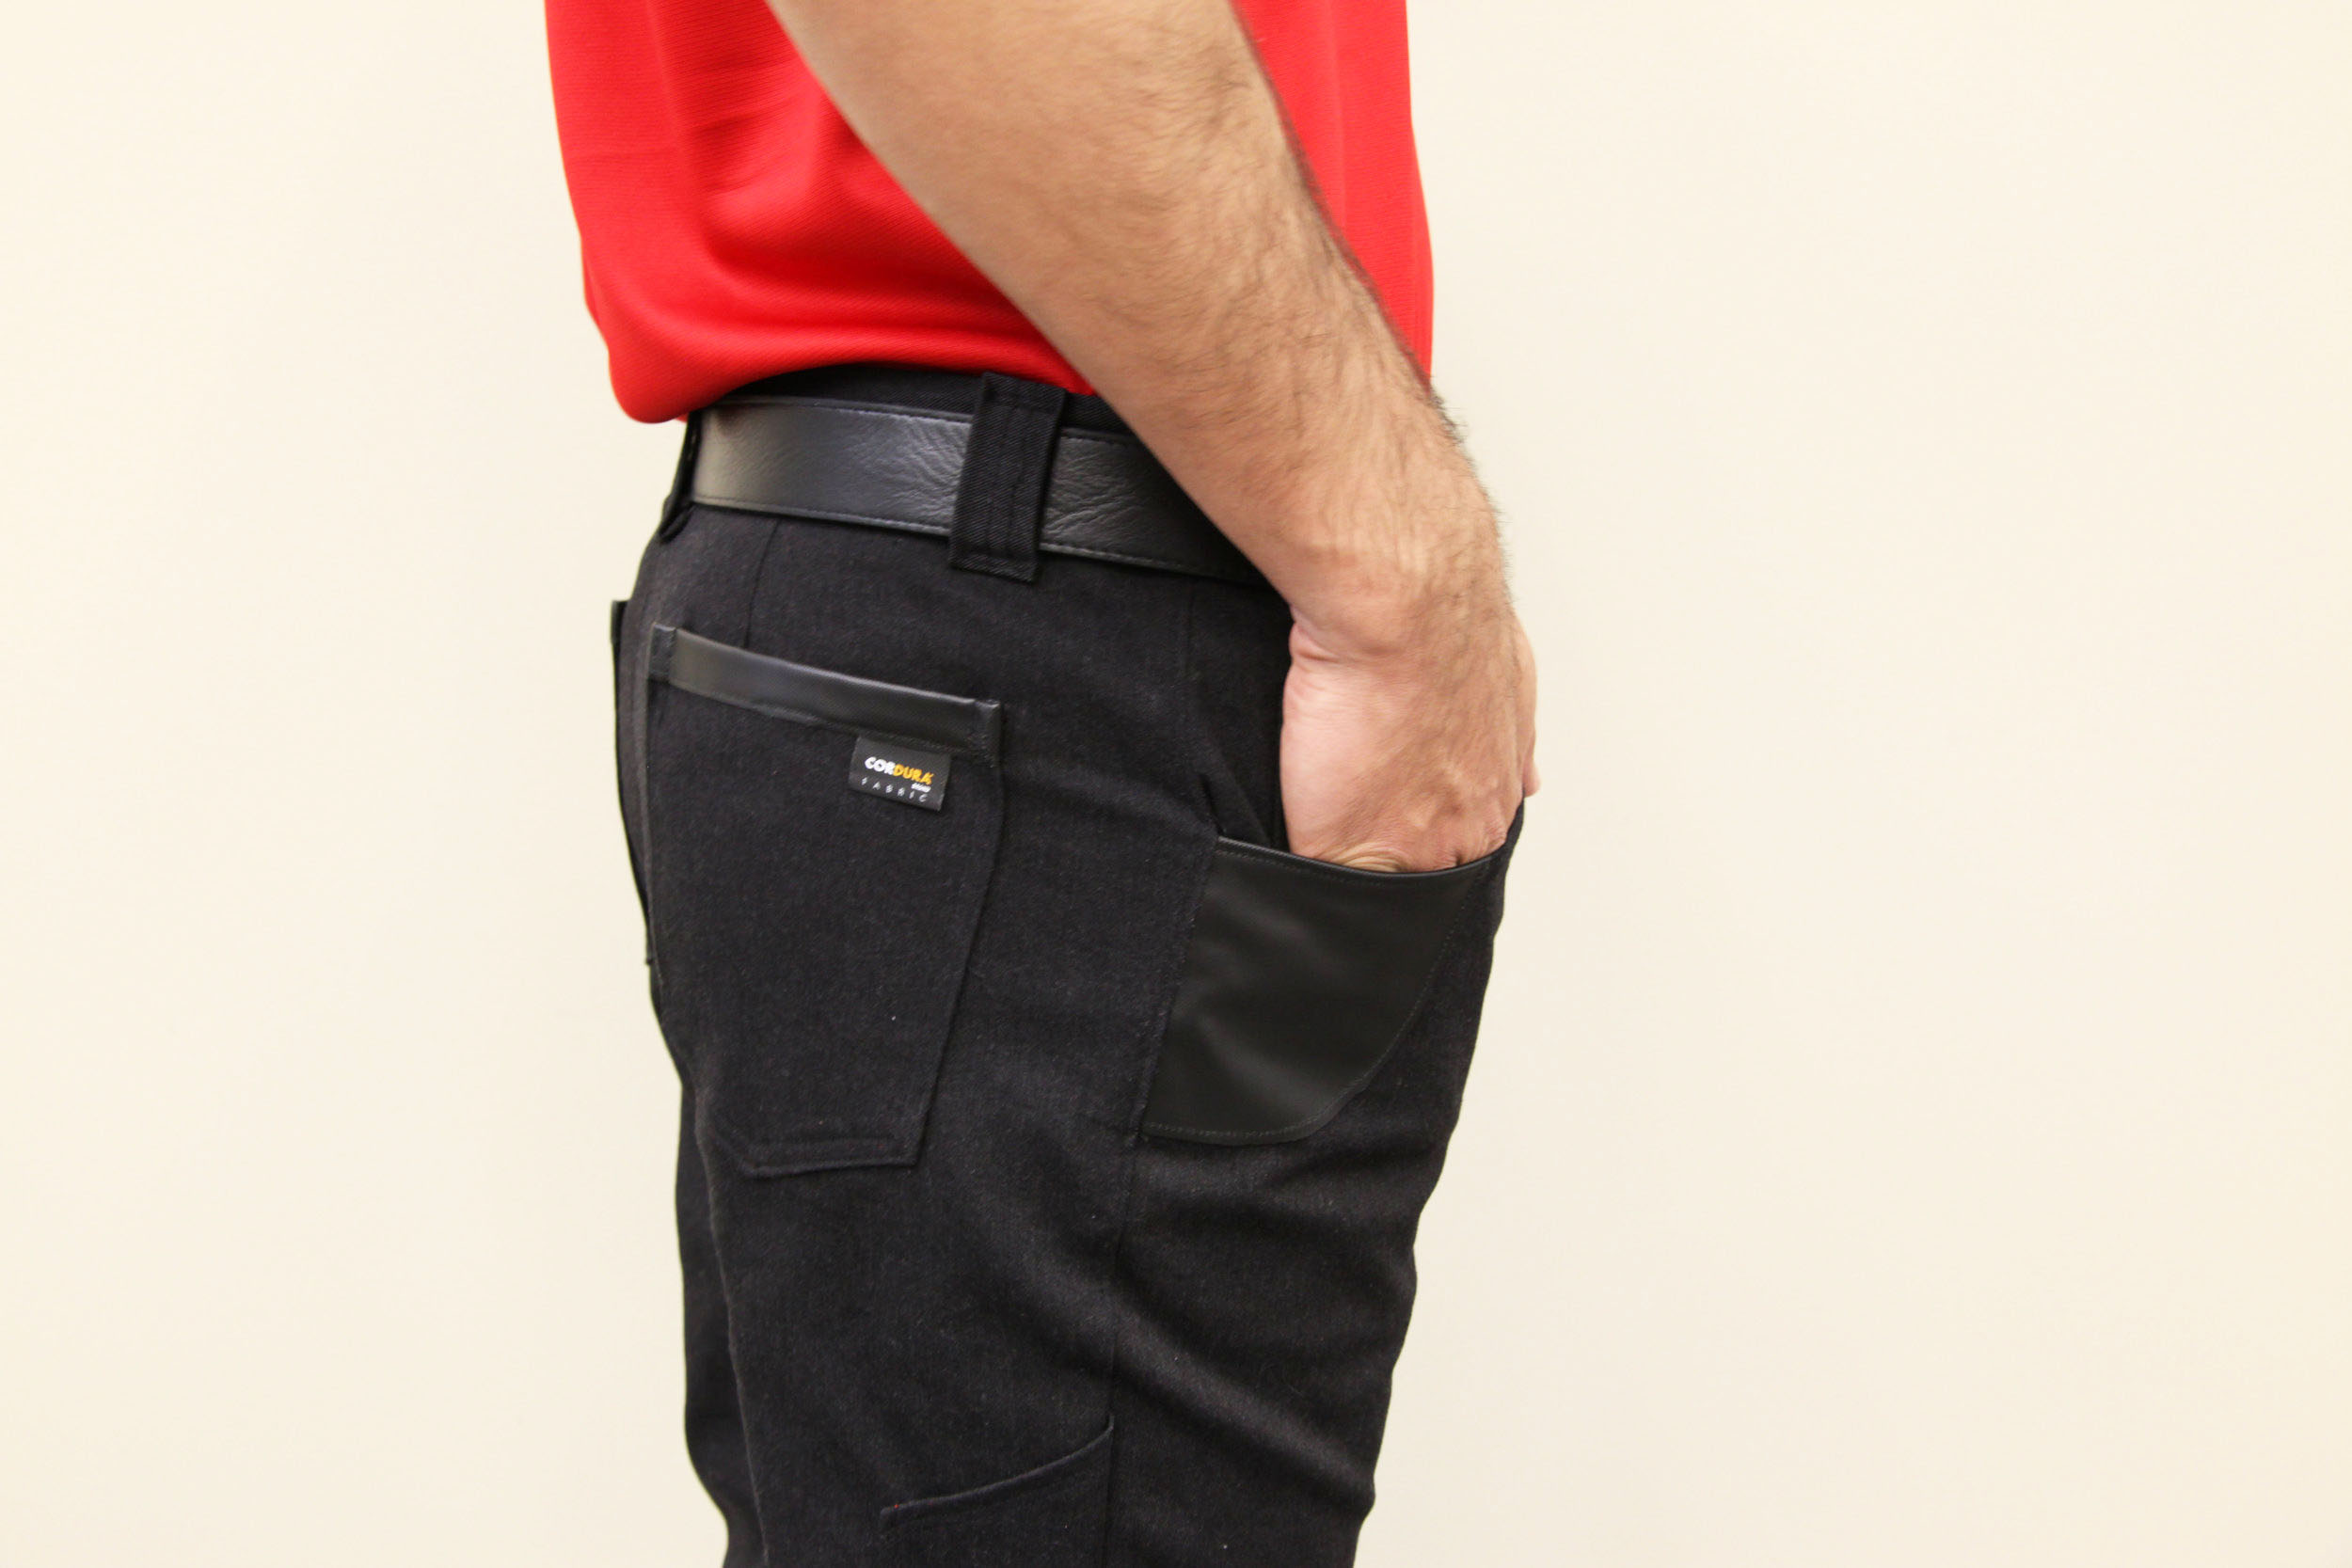 Ballistic Trim at Front and Back Pocket with Wide Belt Loops and Branding